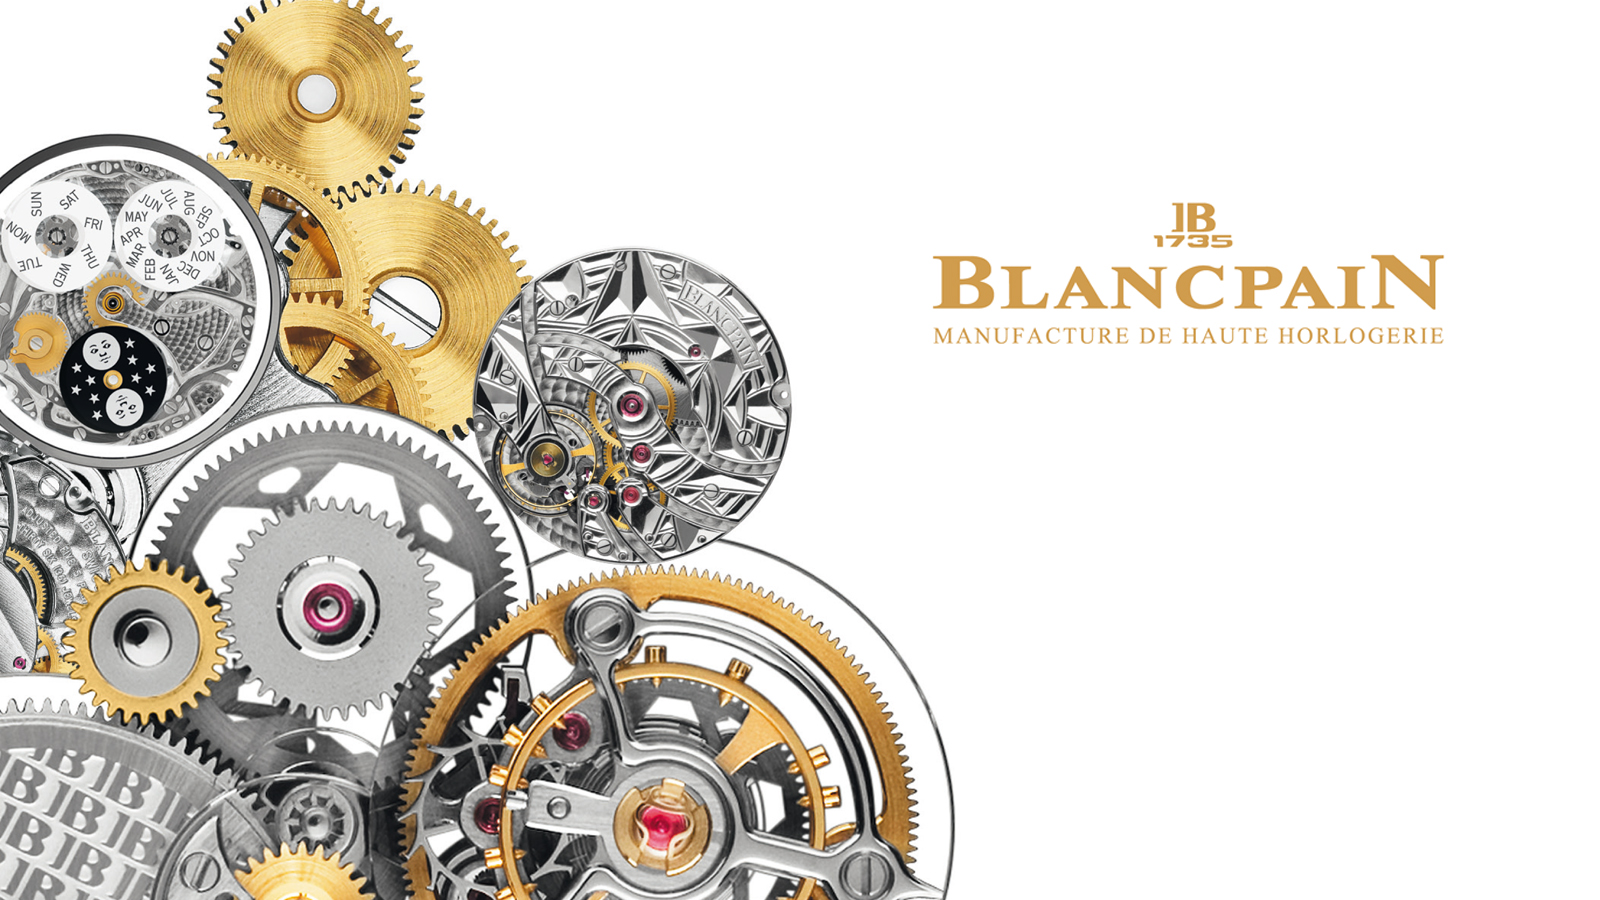 1-2S-Blancpain-Thematique-de-Noel-Design-Merchandising.jpg